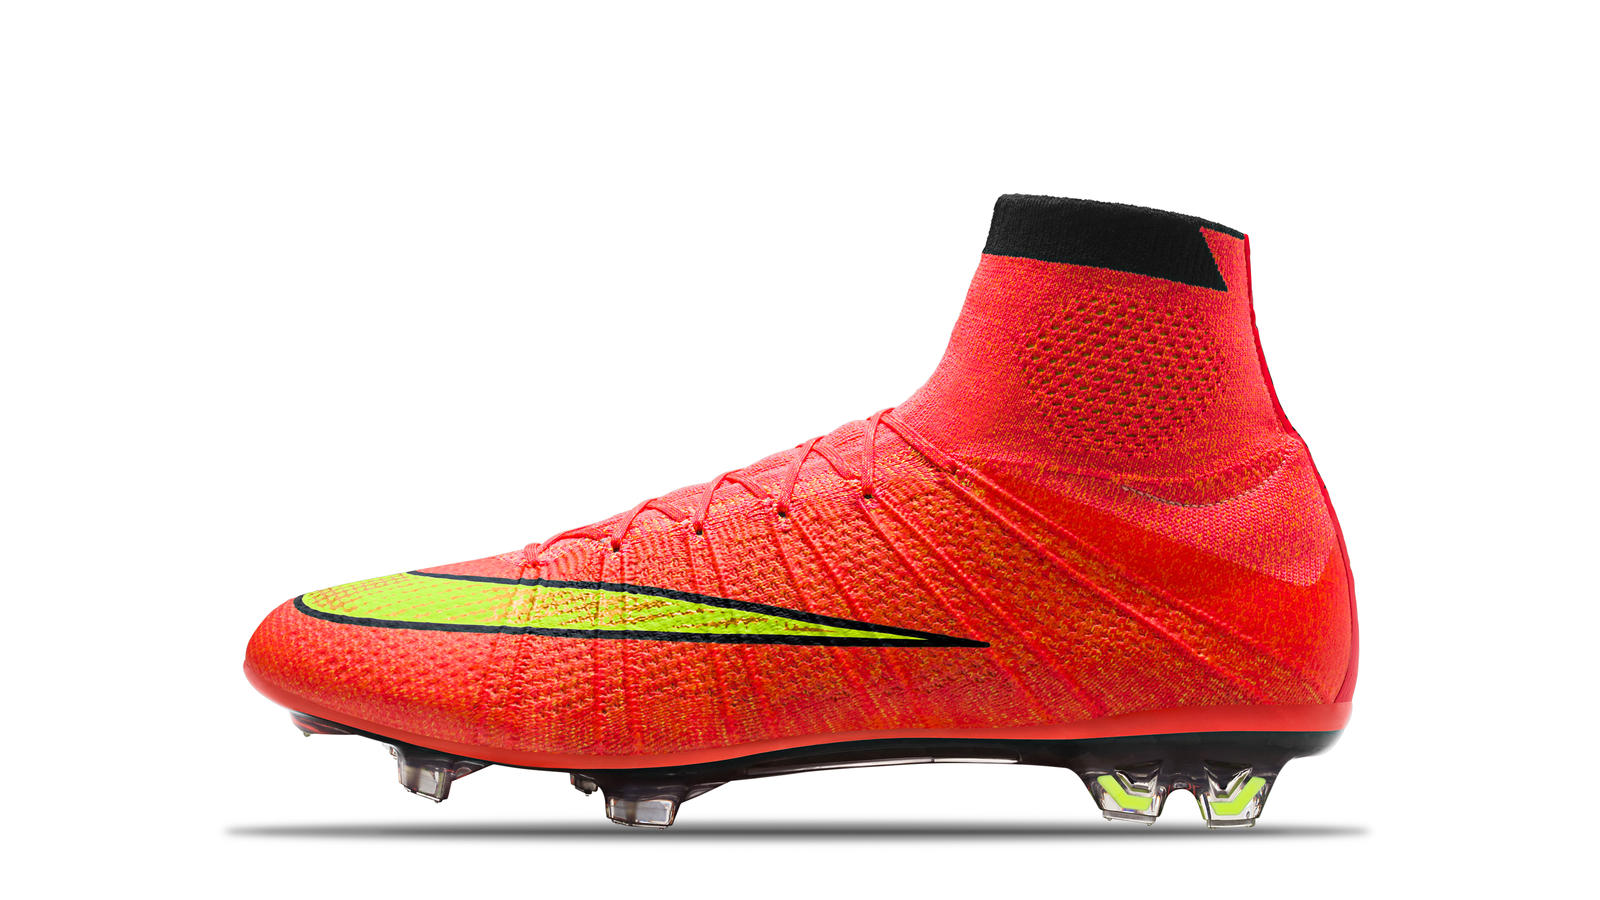 size 40 f629b 222ab 2014 Mercurial Superfly IV Hyper Punch Gold Black